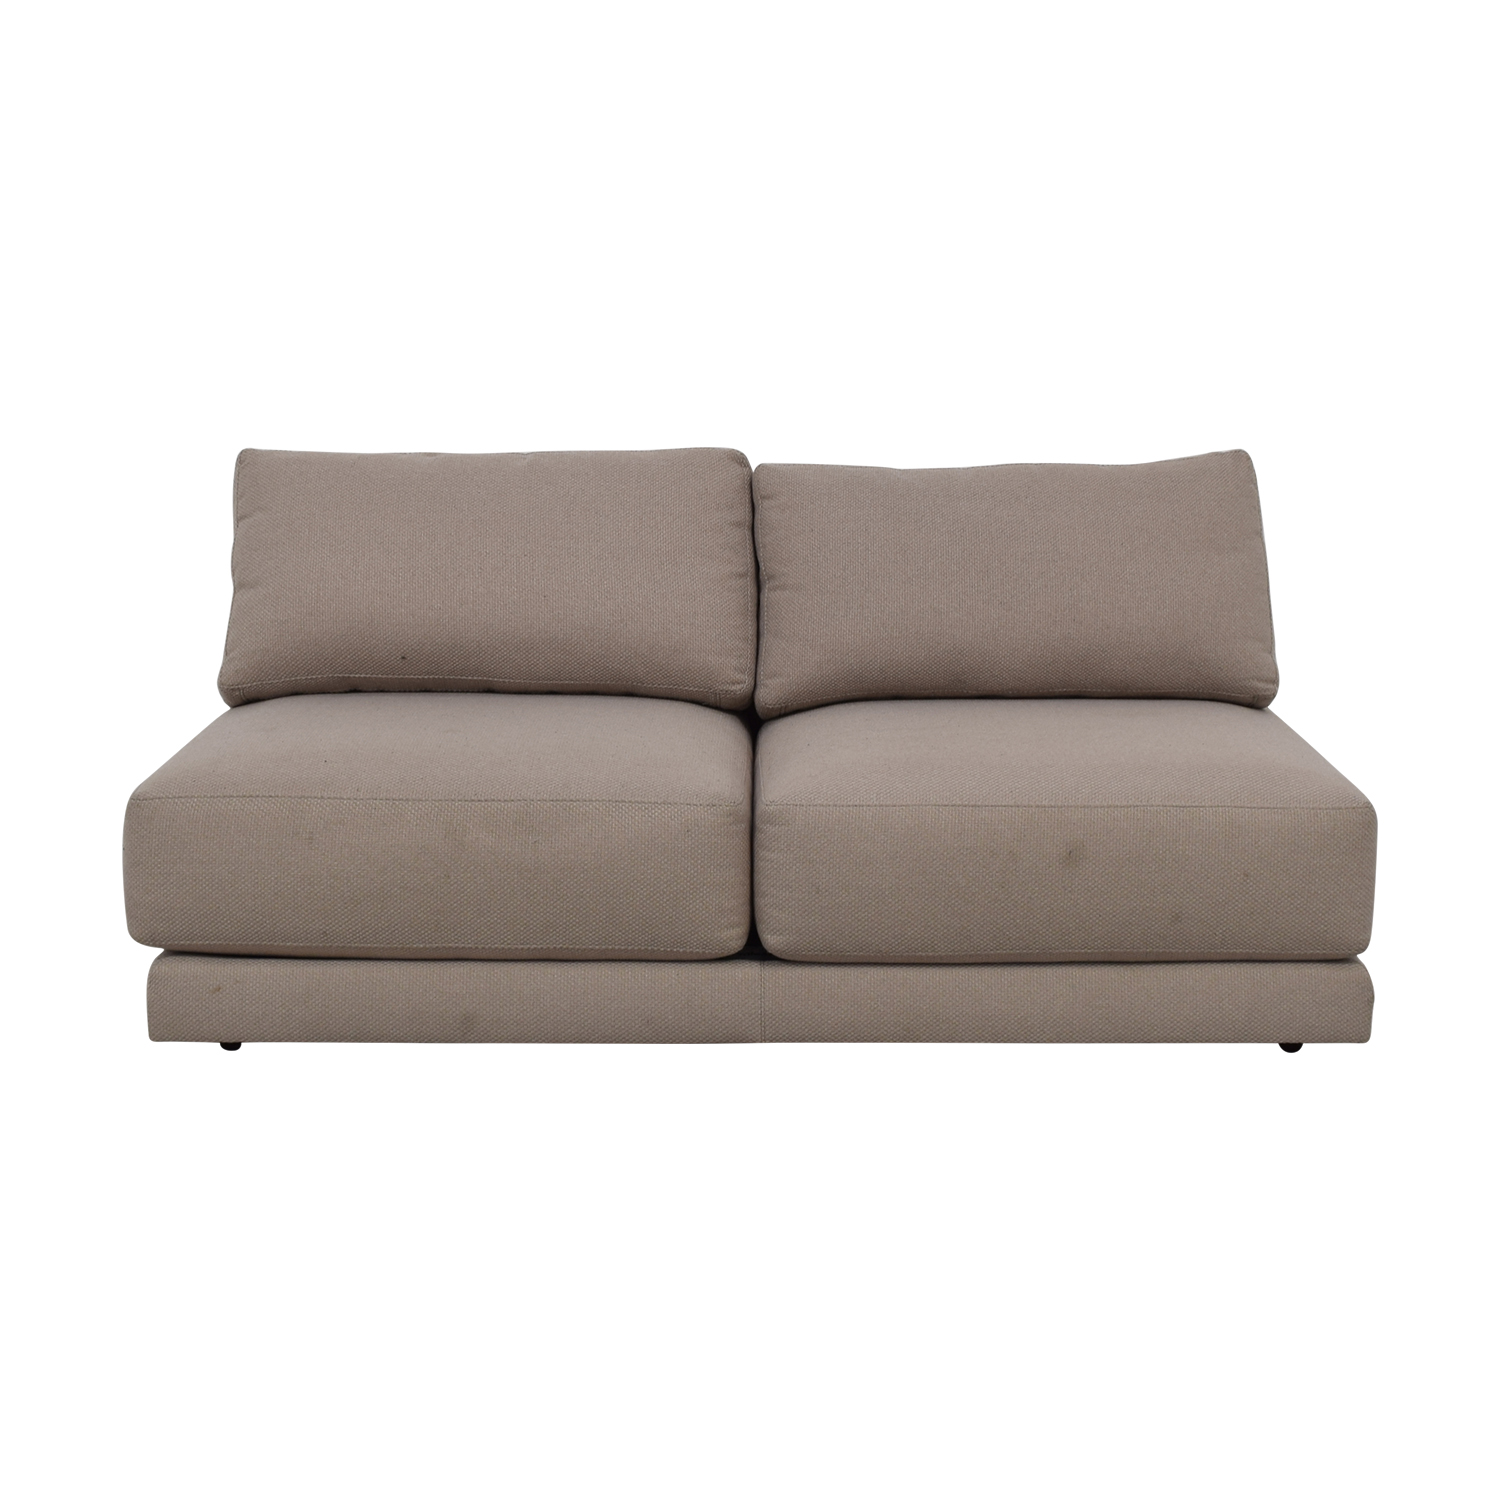 Crate & Barrel Moda Grey Armless Loveseat Crate & Barrel